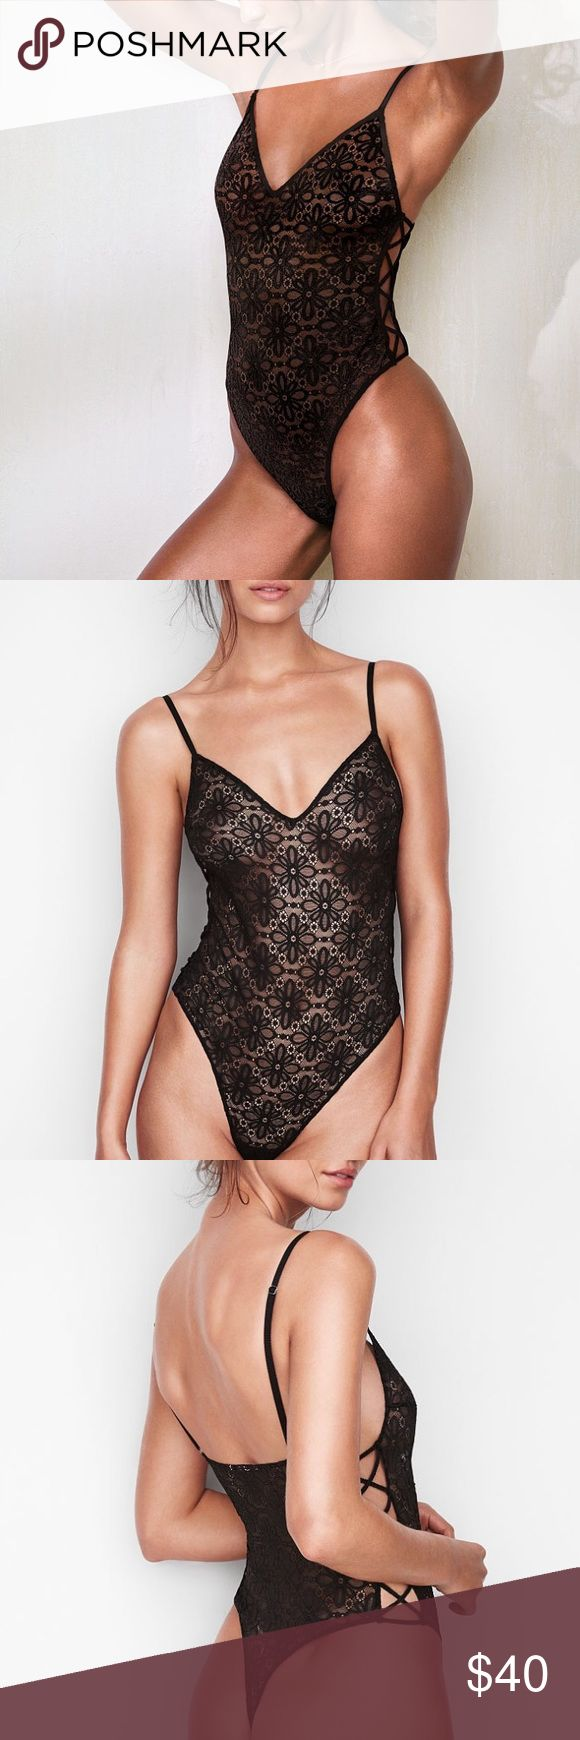 Victoria's Secret lace crisscross bodysuit teddy Size small. New with tags! Offers are always welcome! It never hurts to ask 😊 Please only reasonable offers. Don't forget to bundle & save- it'll save you on shipping as well! 🛍 All items are usually shipped out within one-two business days, USPS Priority Mail, tissue paper packaged, & sealed. Victoria's Secret Intimates & Sleepwear Chemises & Slips